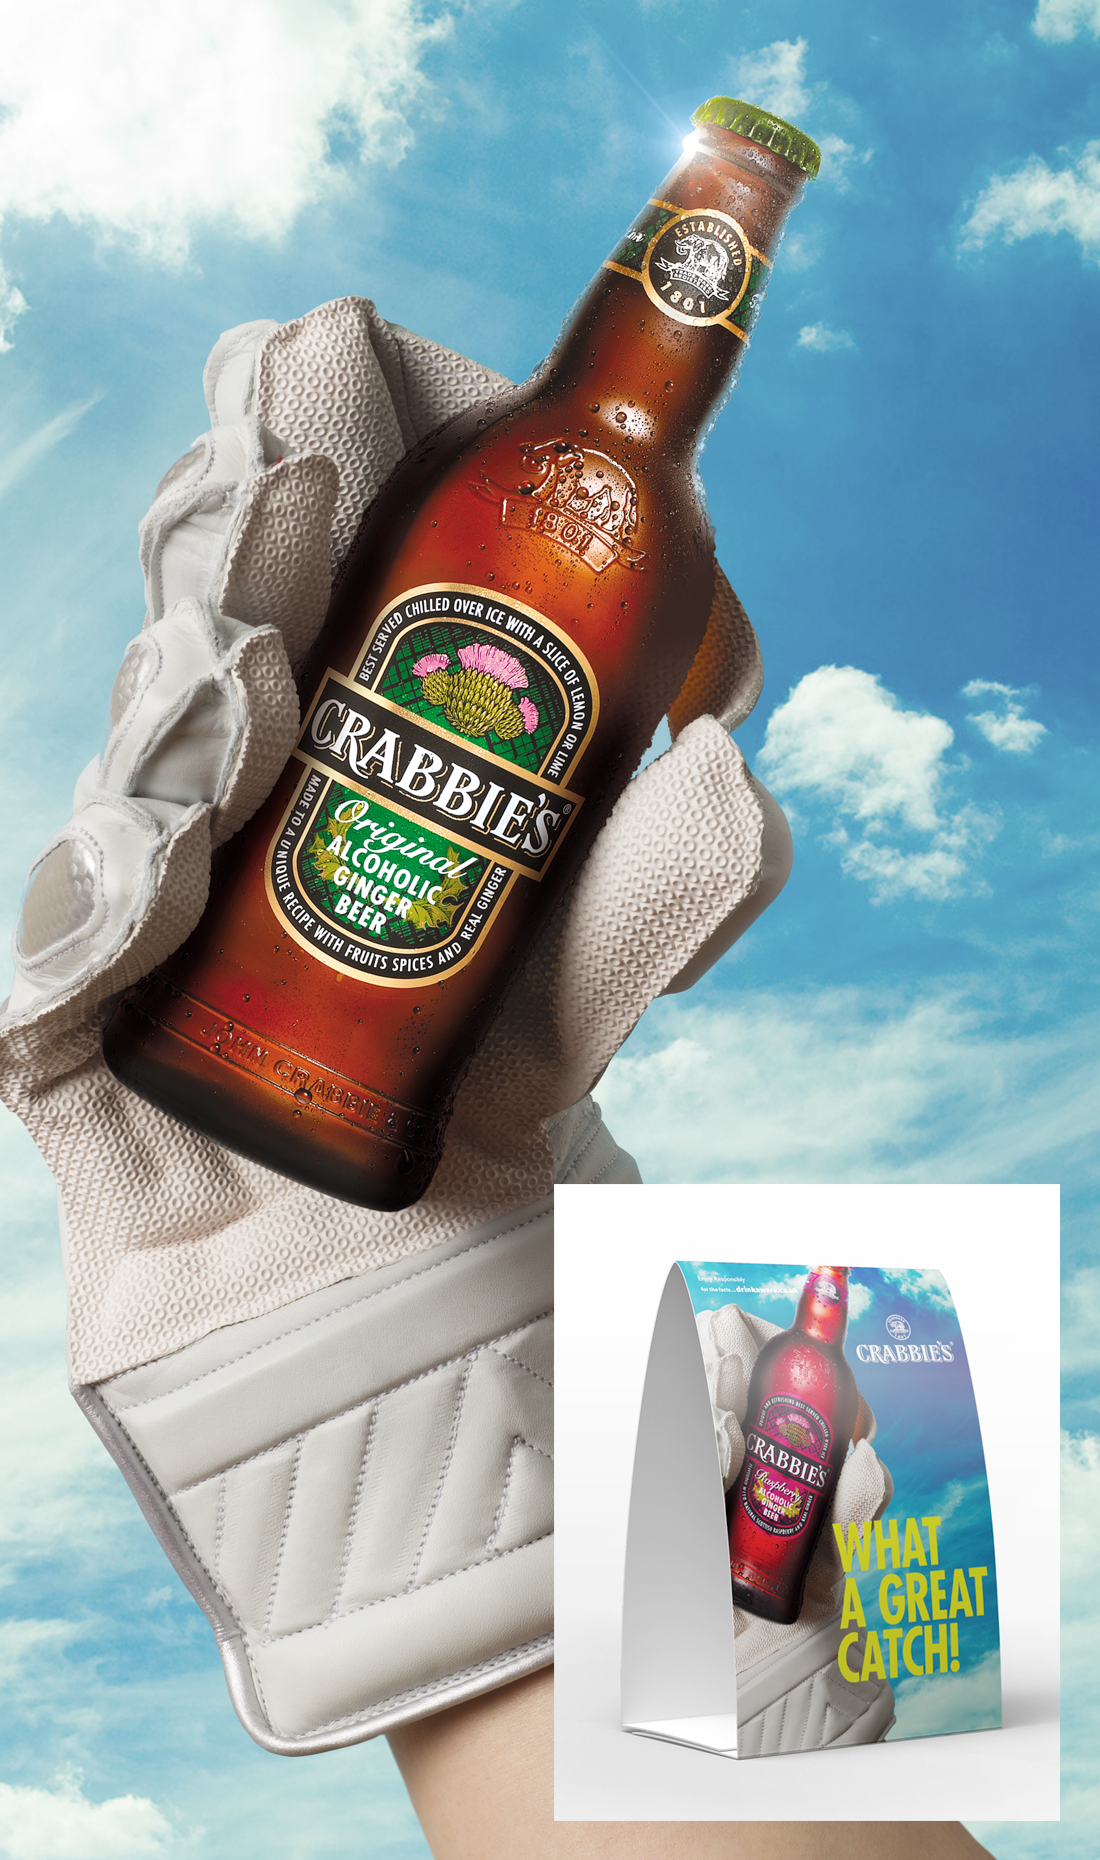 crabbies in cricket glove with tent card